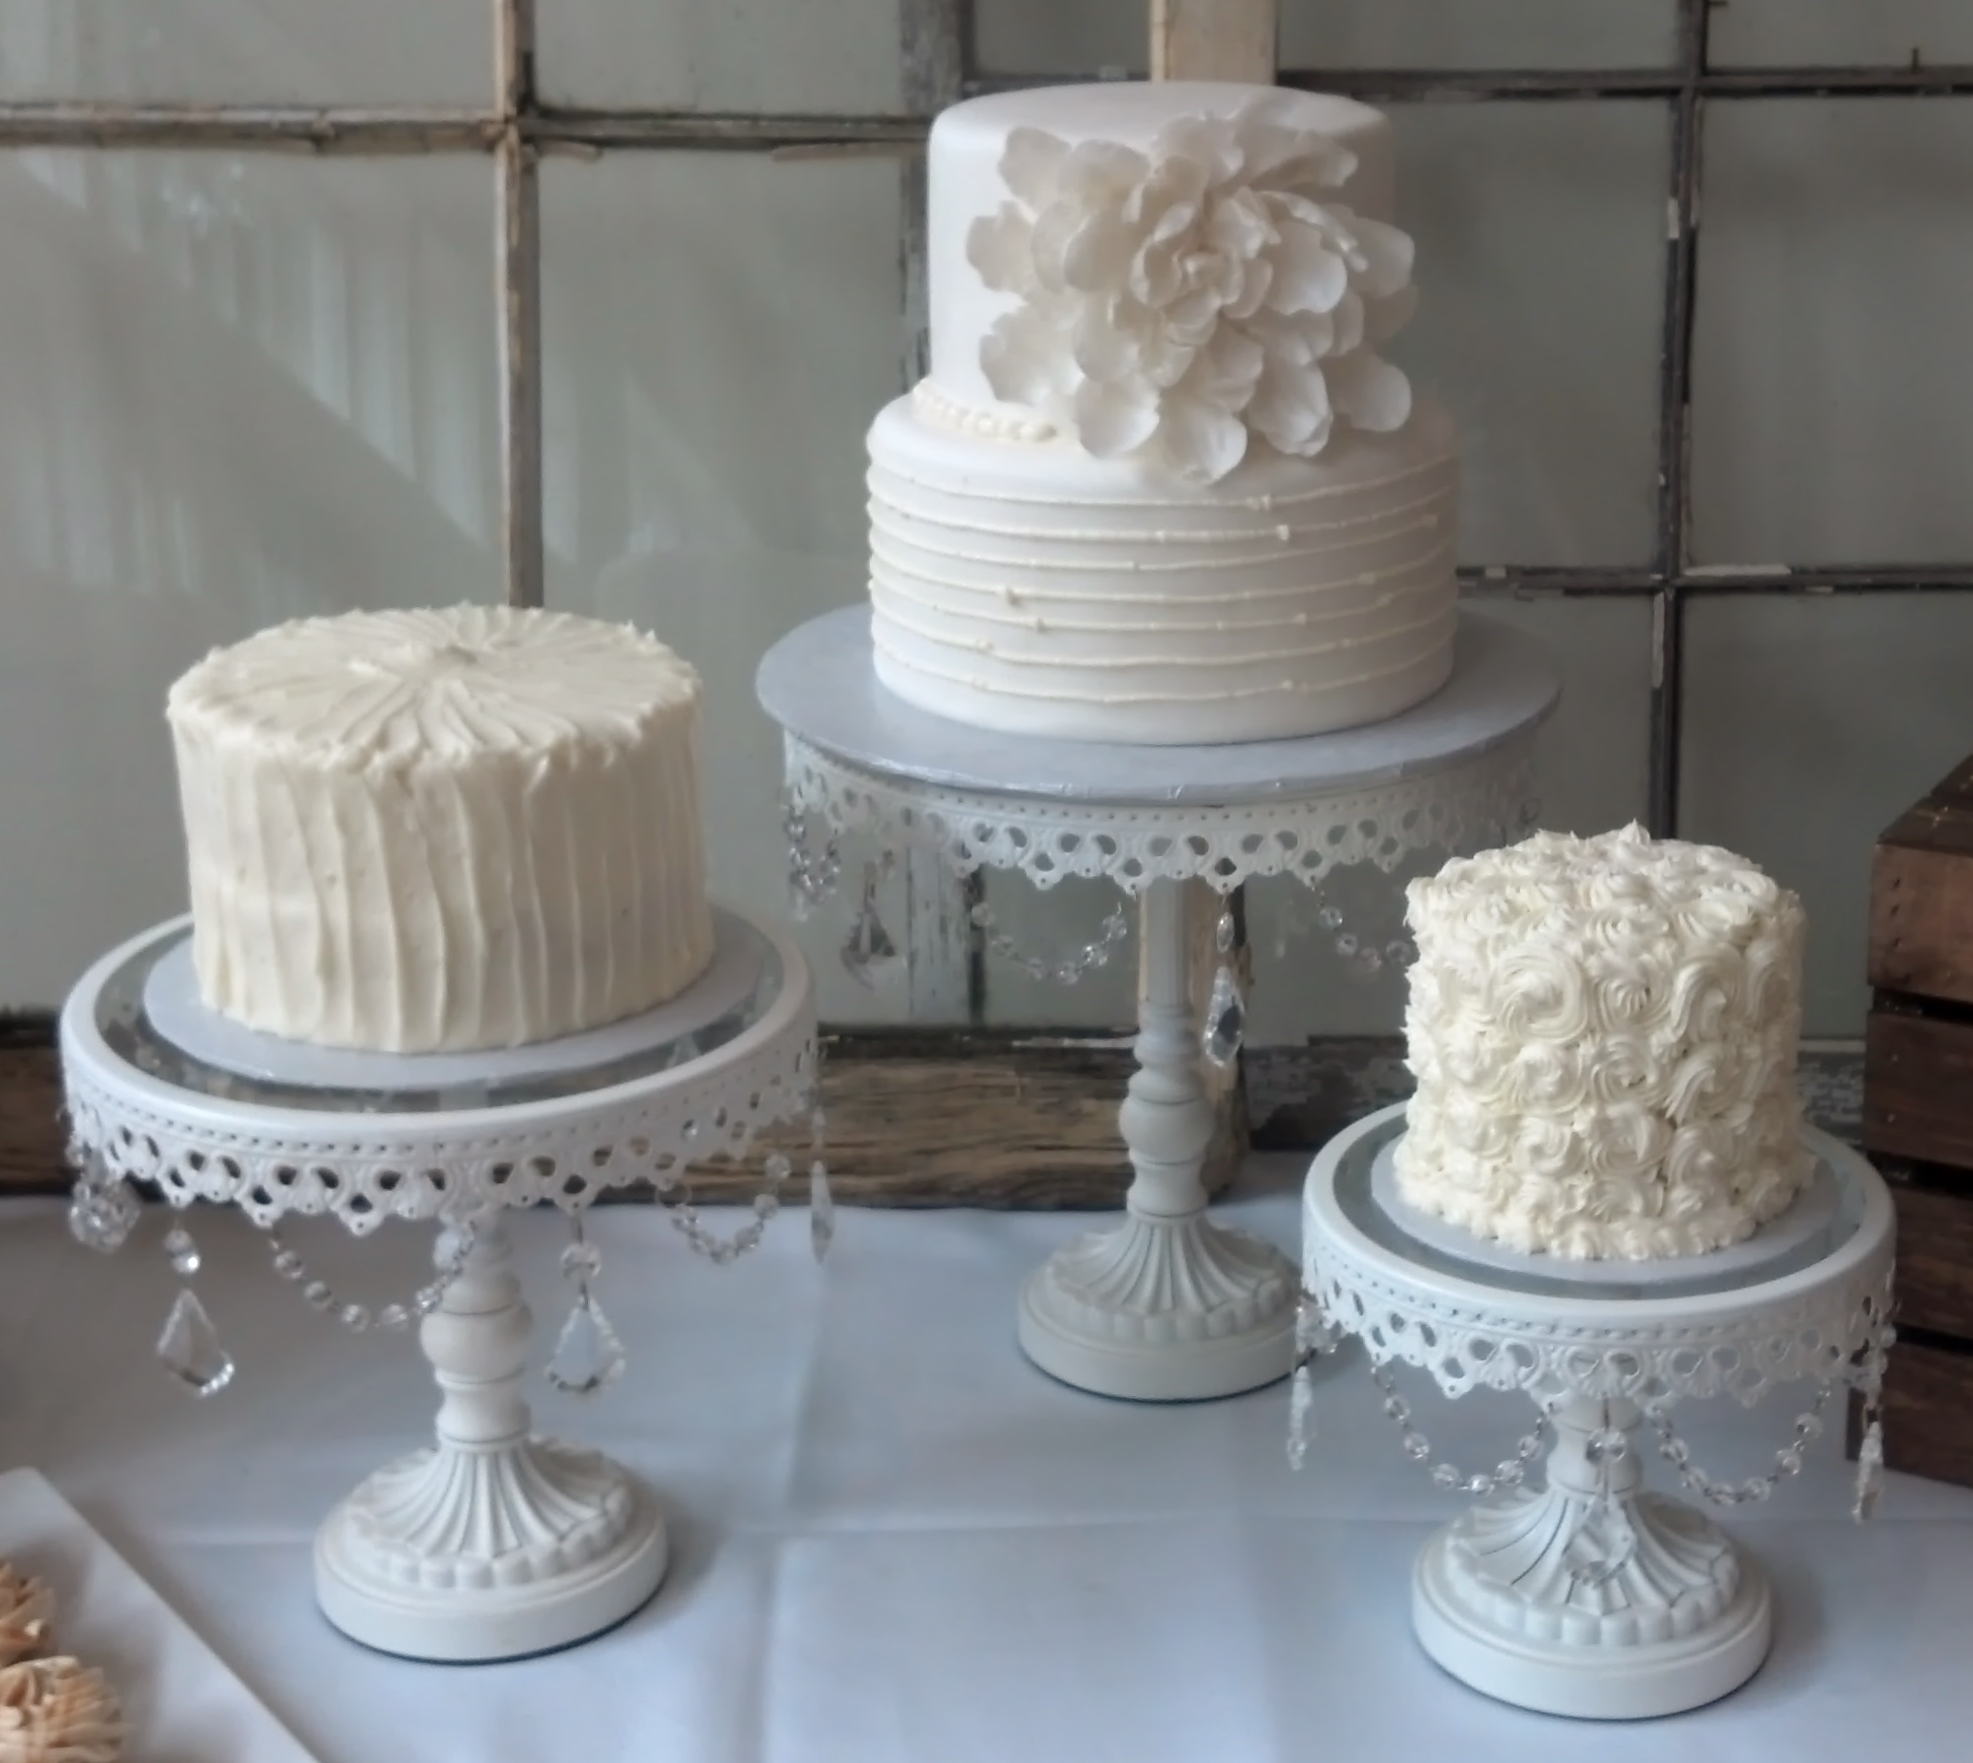 It s here Bella s Dessert Wedding Cake Style Trends for 2016